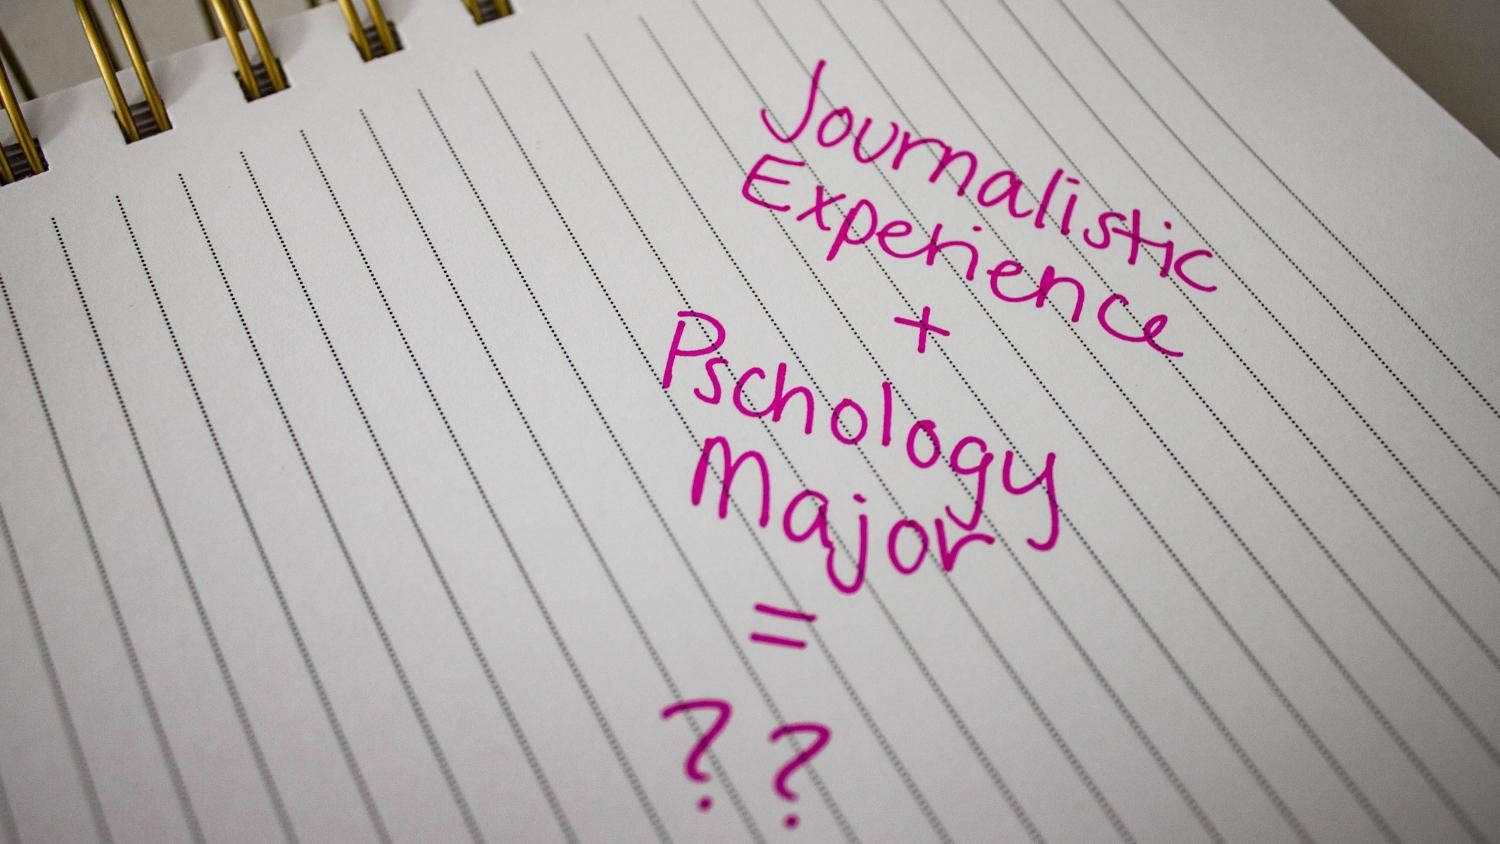 Psychology major benefits from journalistic experience